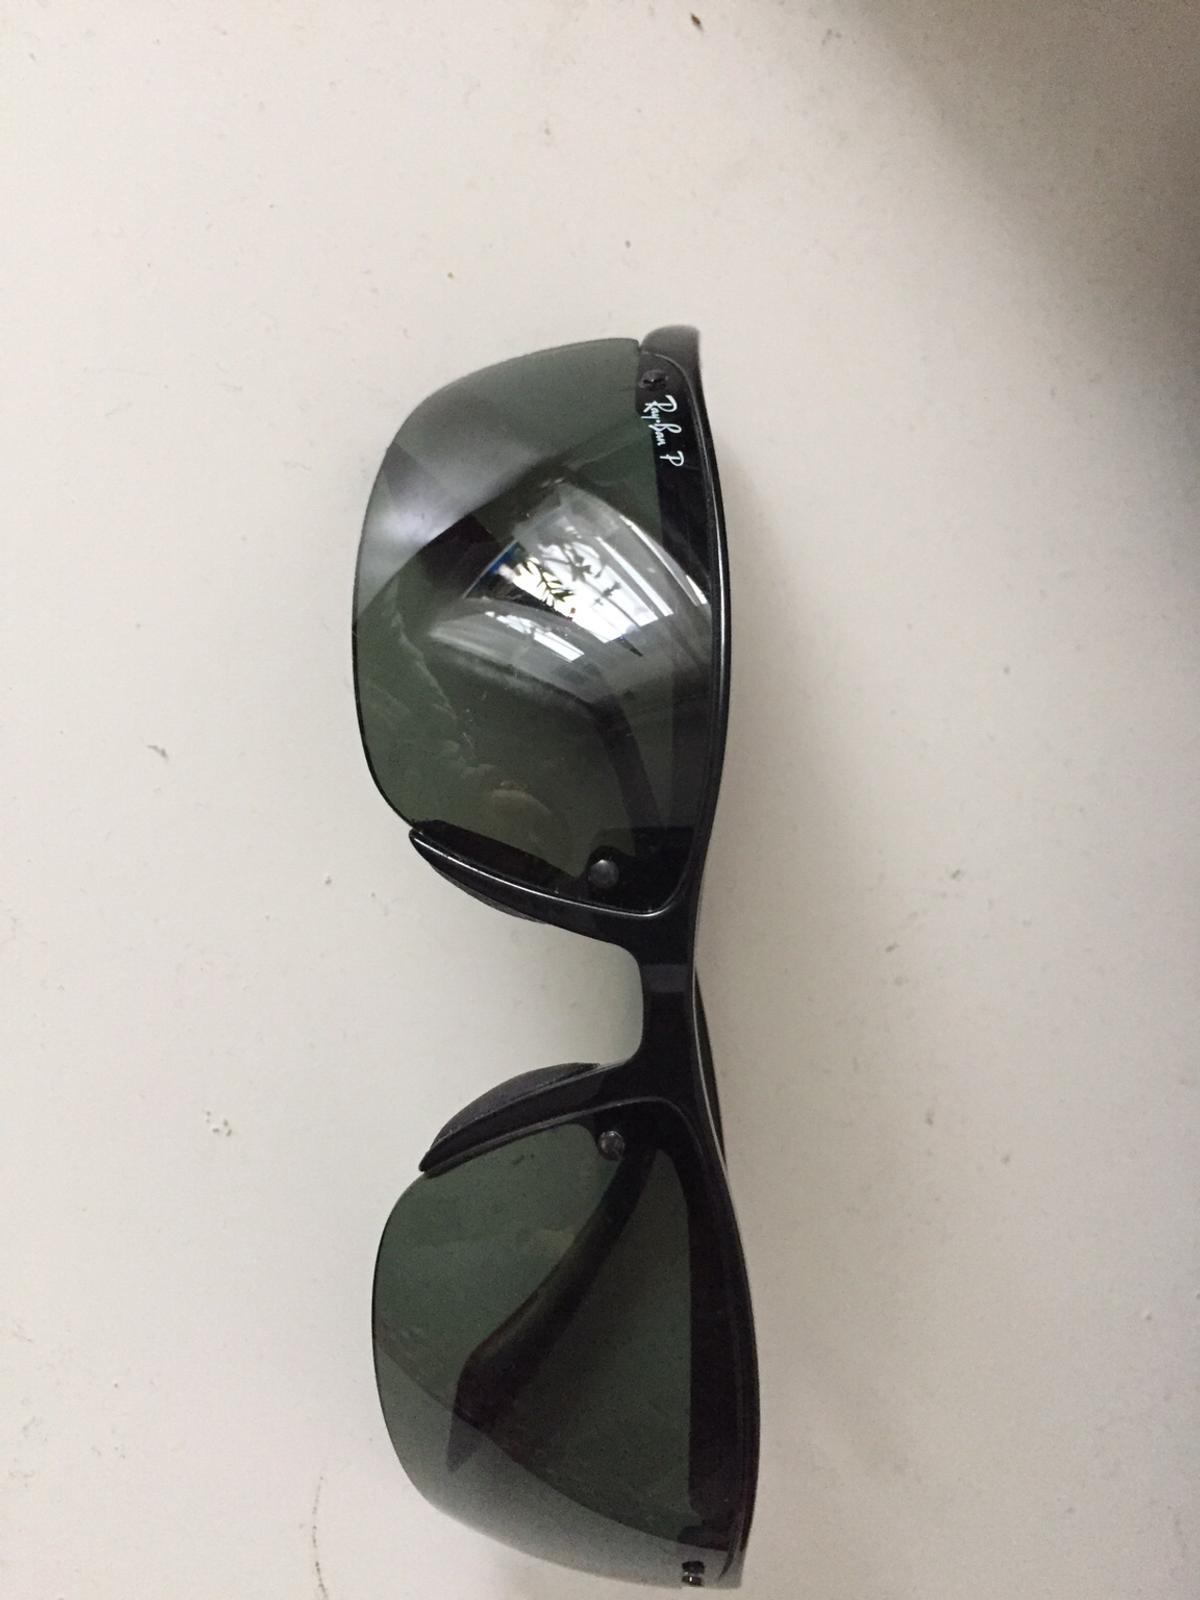 Little used Ray-ban sports sunglasses see picture